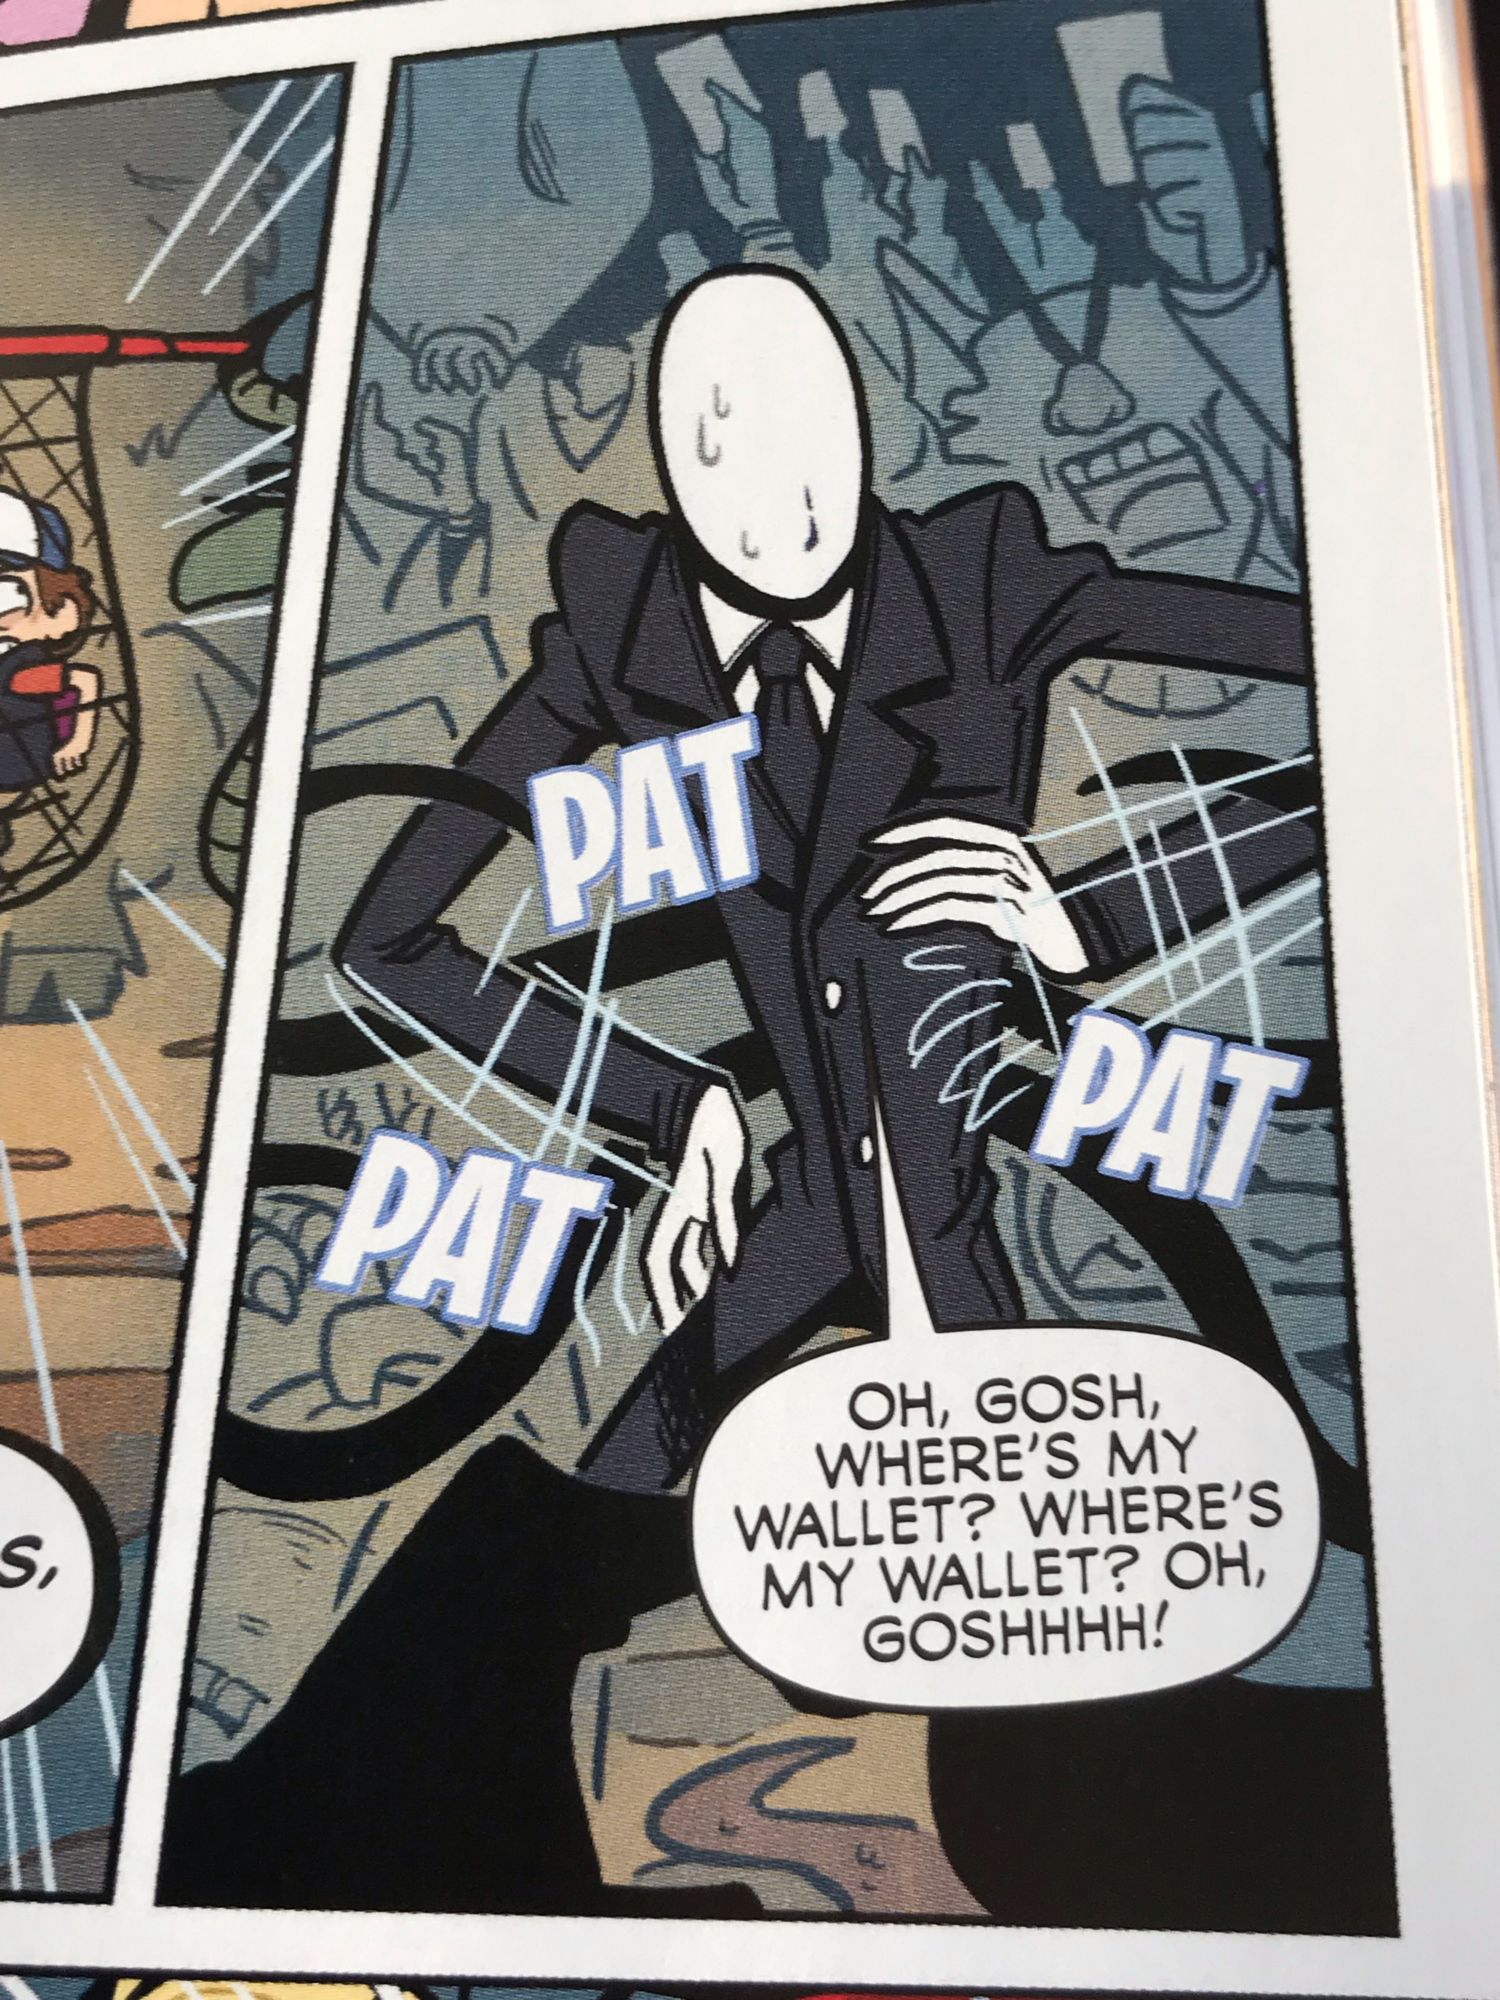 GUYS IT IS CONFIRMED, SLENDERMAN IS IN THE GRAVITY FALLS LOST LEGENDS BOOK